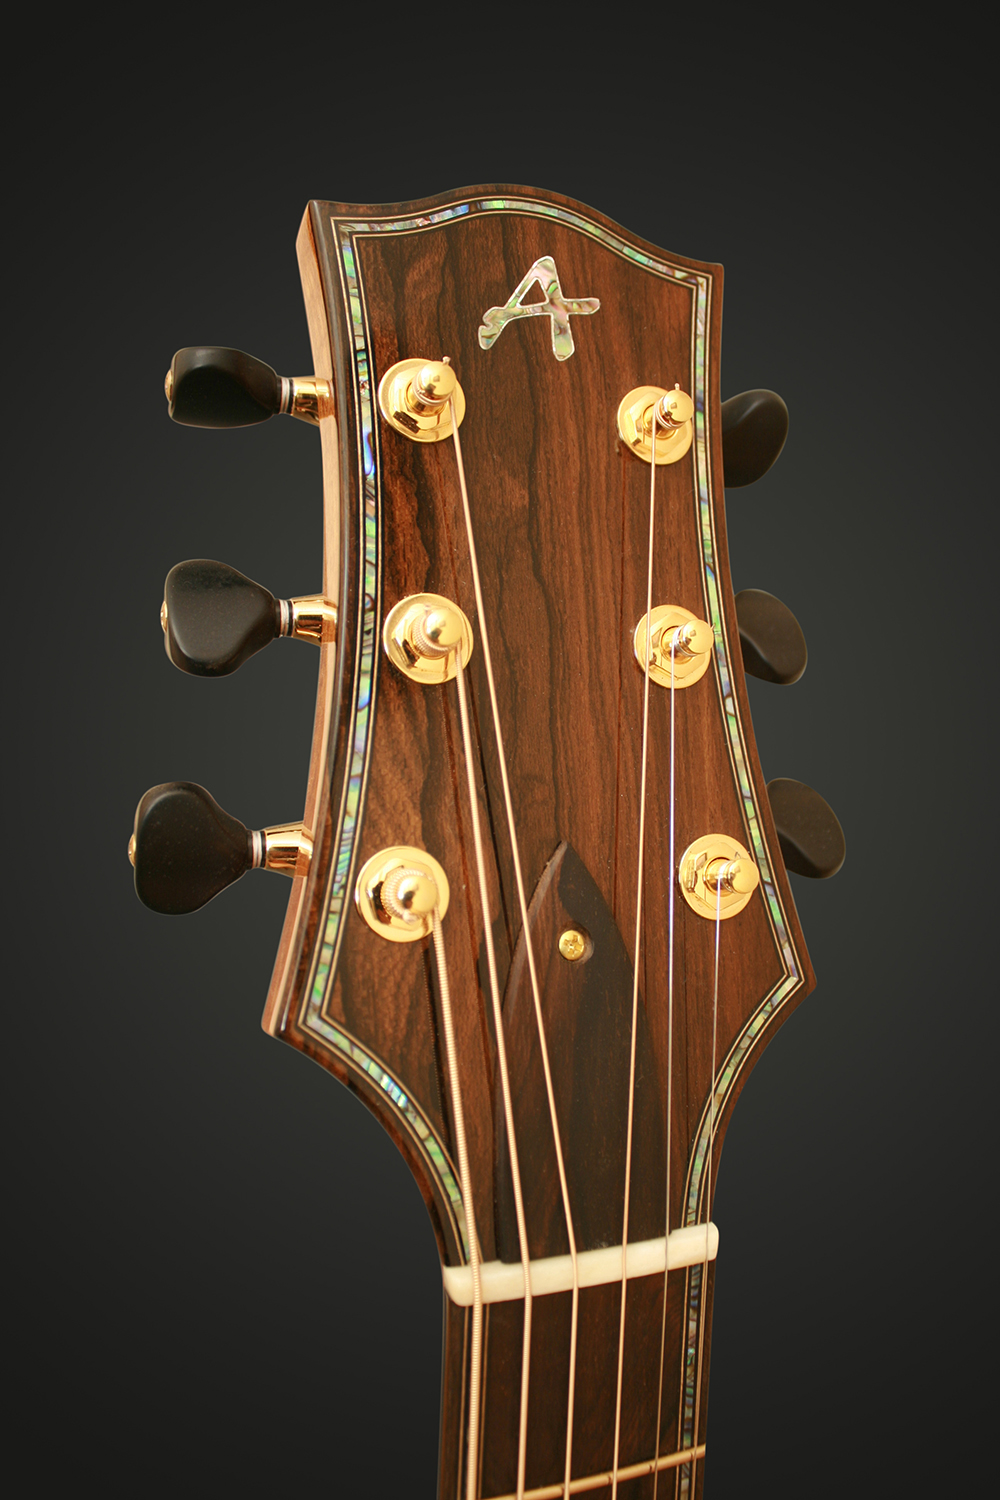 ZIRICOTE HEADSTOCK WITH ABALONE PURFLINGS